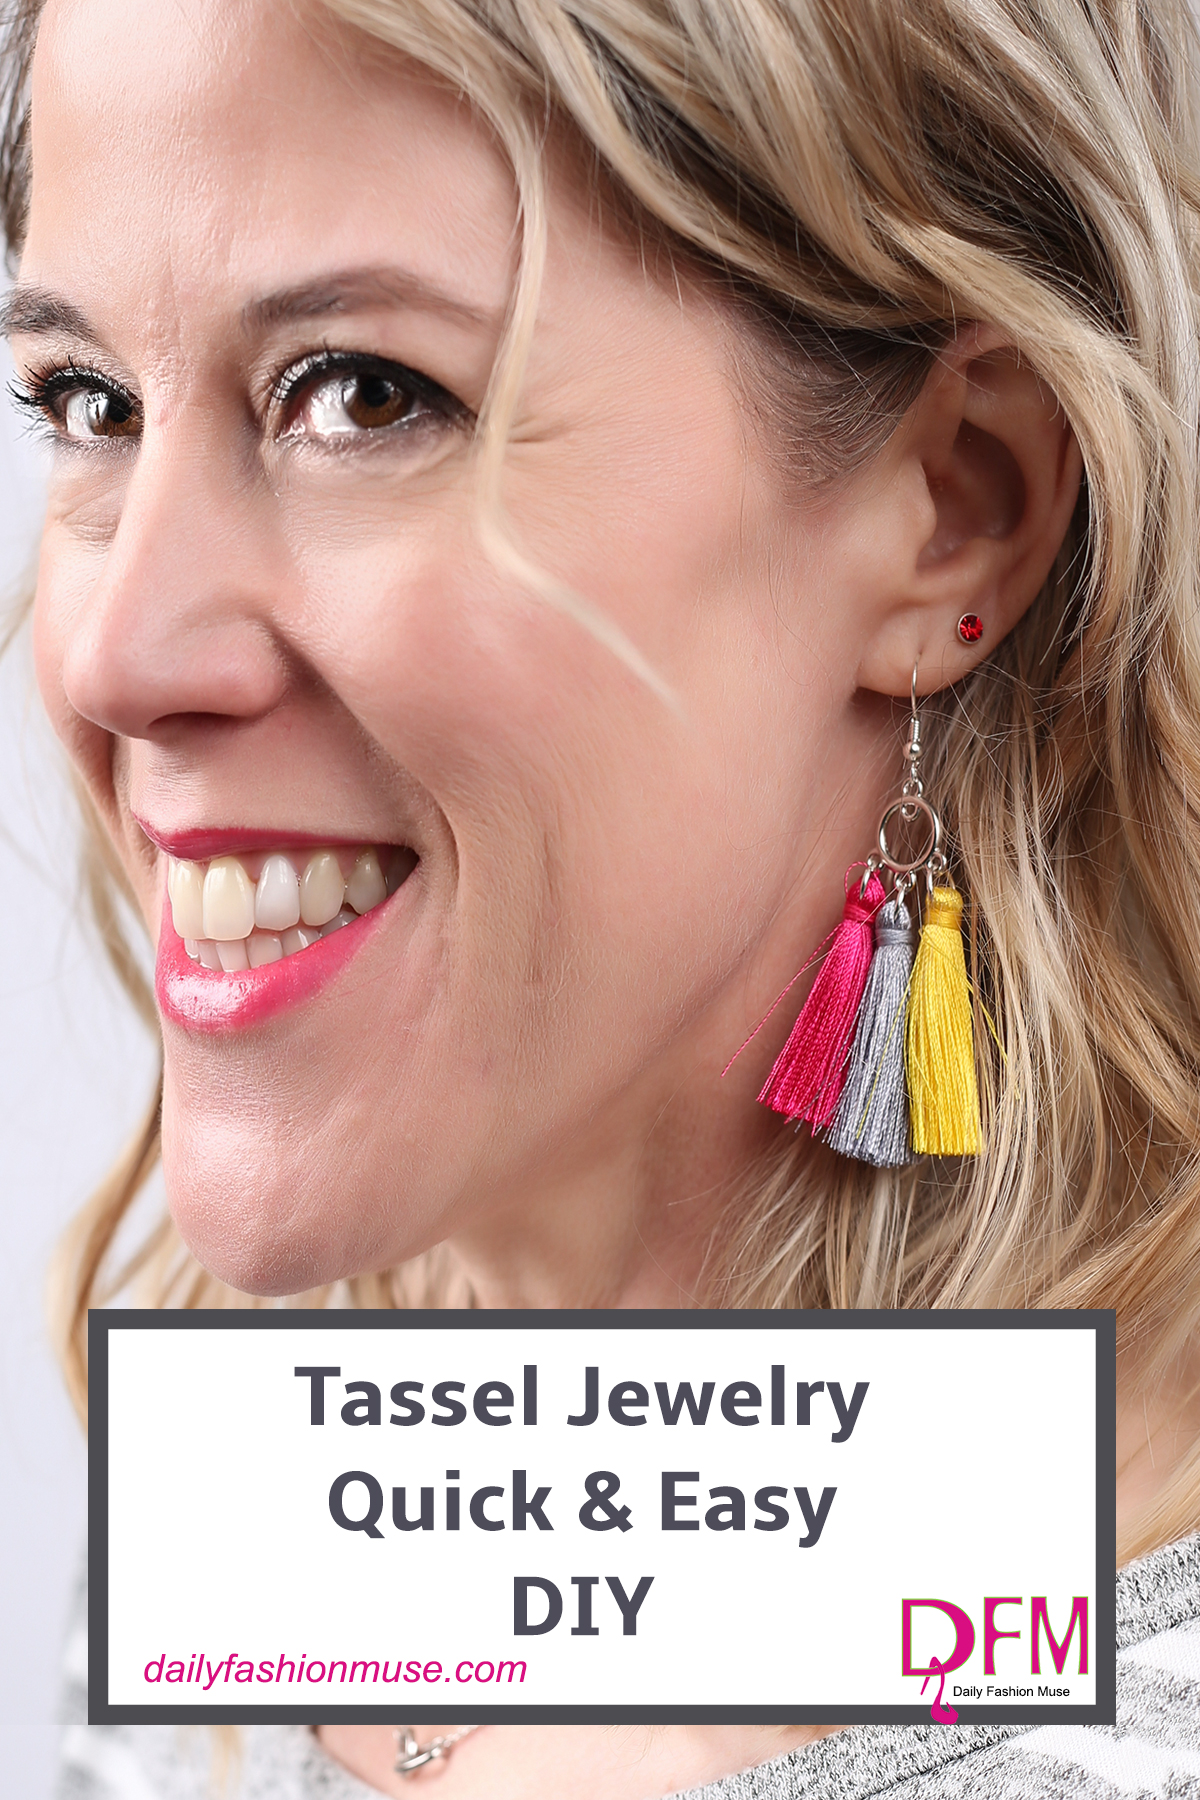 Tassel jewelry has been turning up in all the trend reports for Spring. Why not create your own pieces. Click here for some easy DIY tassel jewelry.